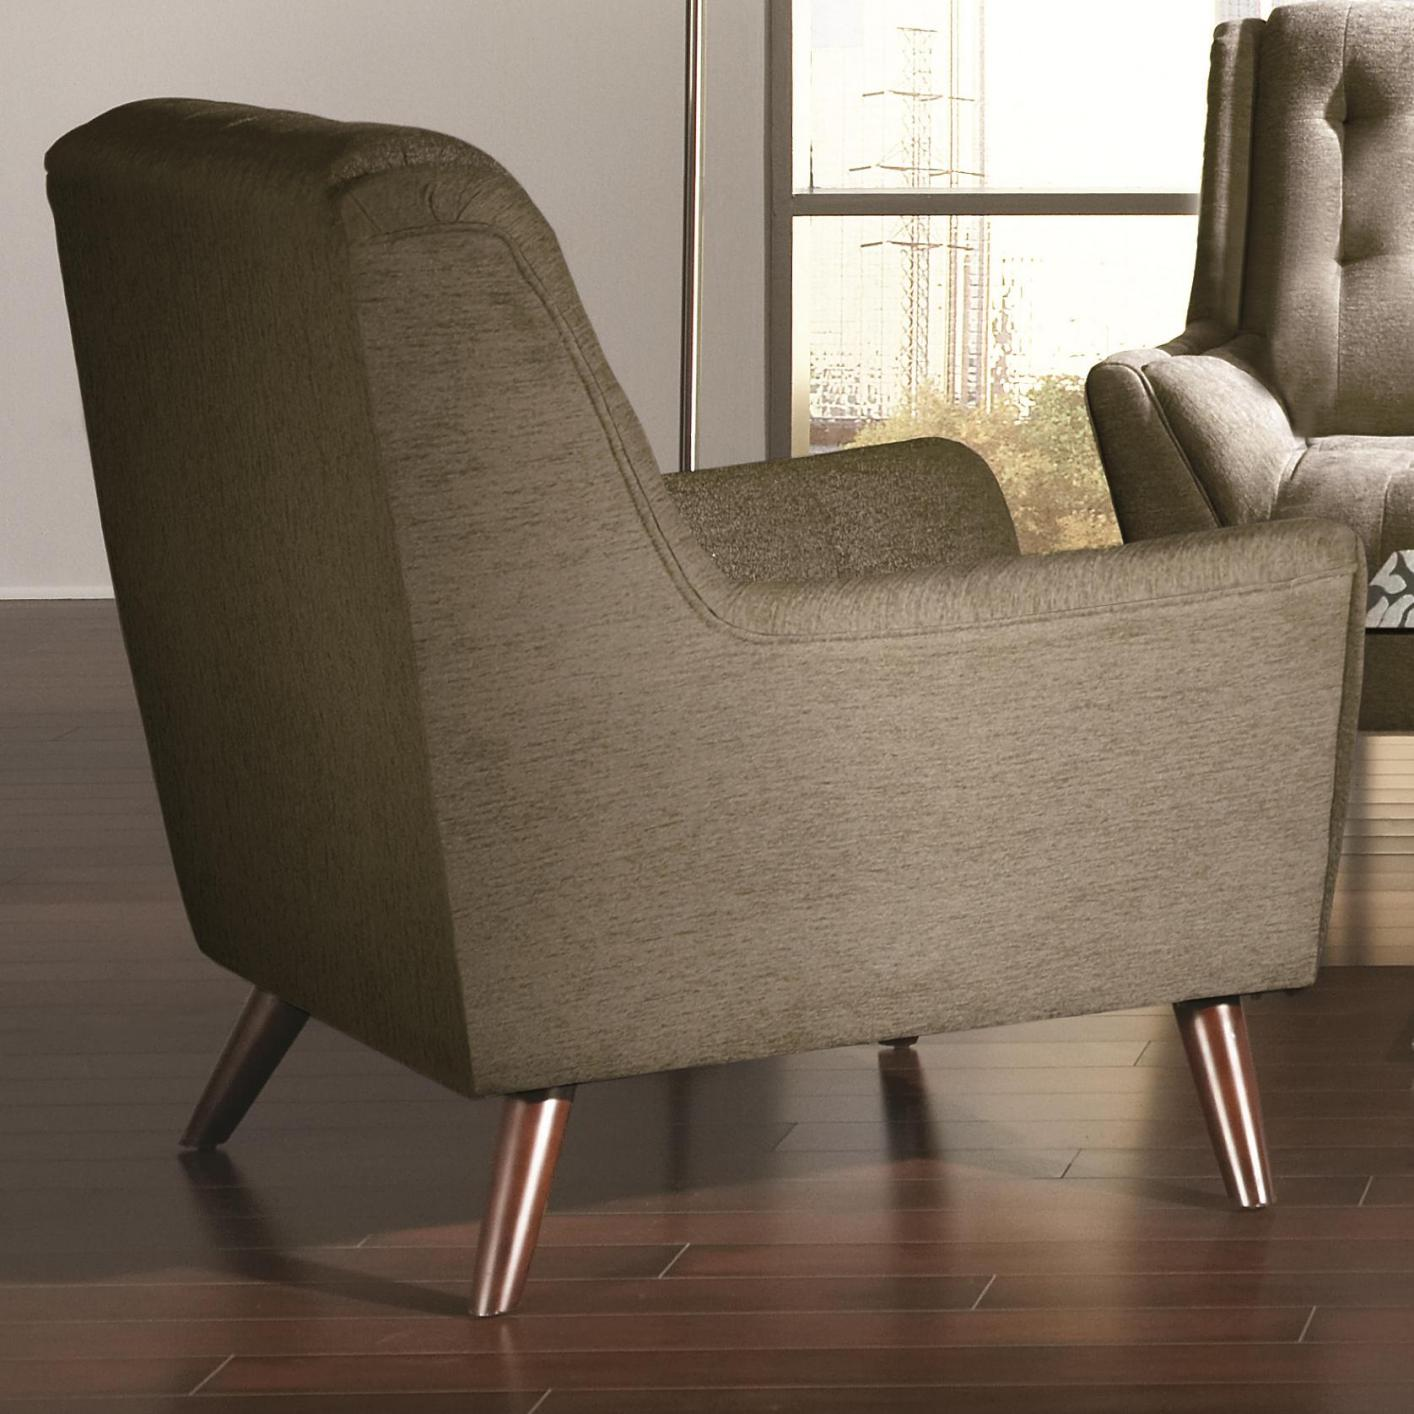 Natalia Grey Fabric Chair Steal A Sofa Furniture Outlet Los